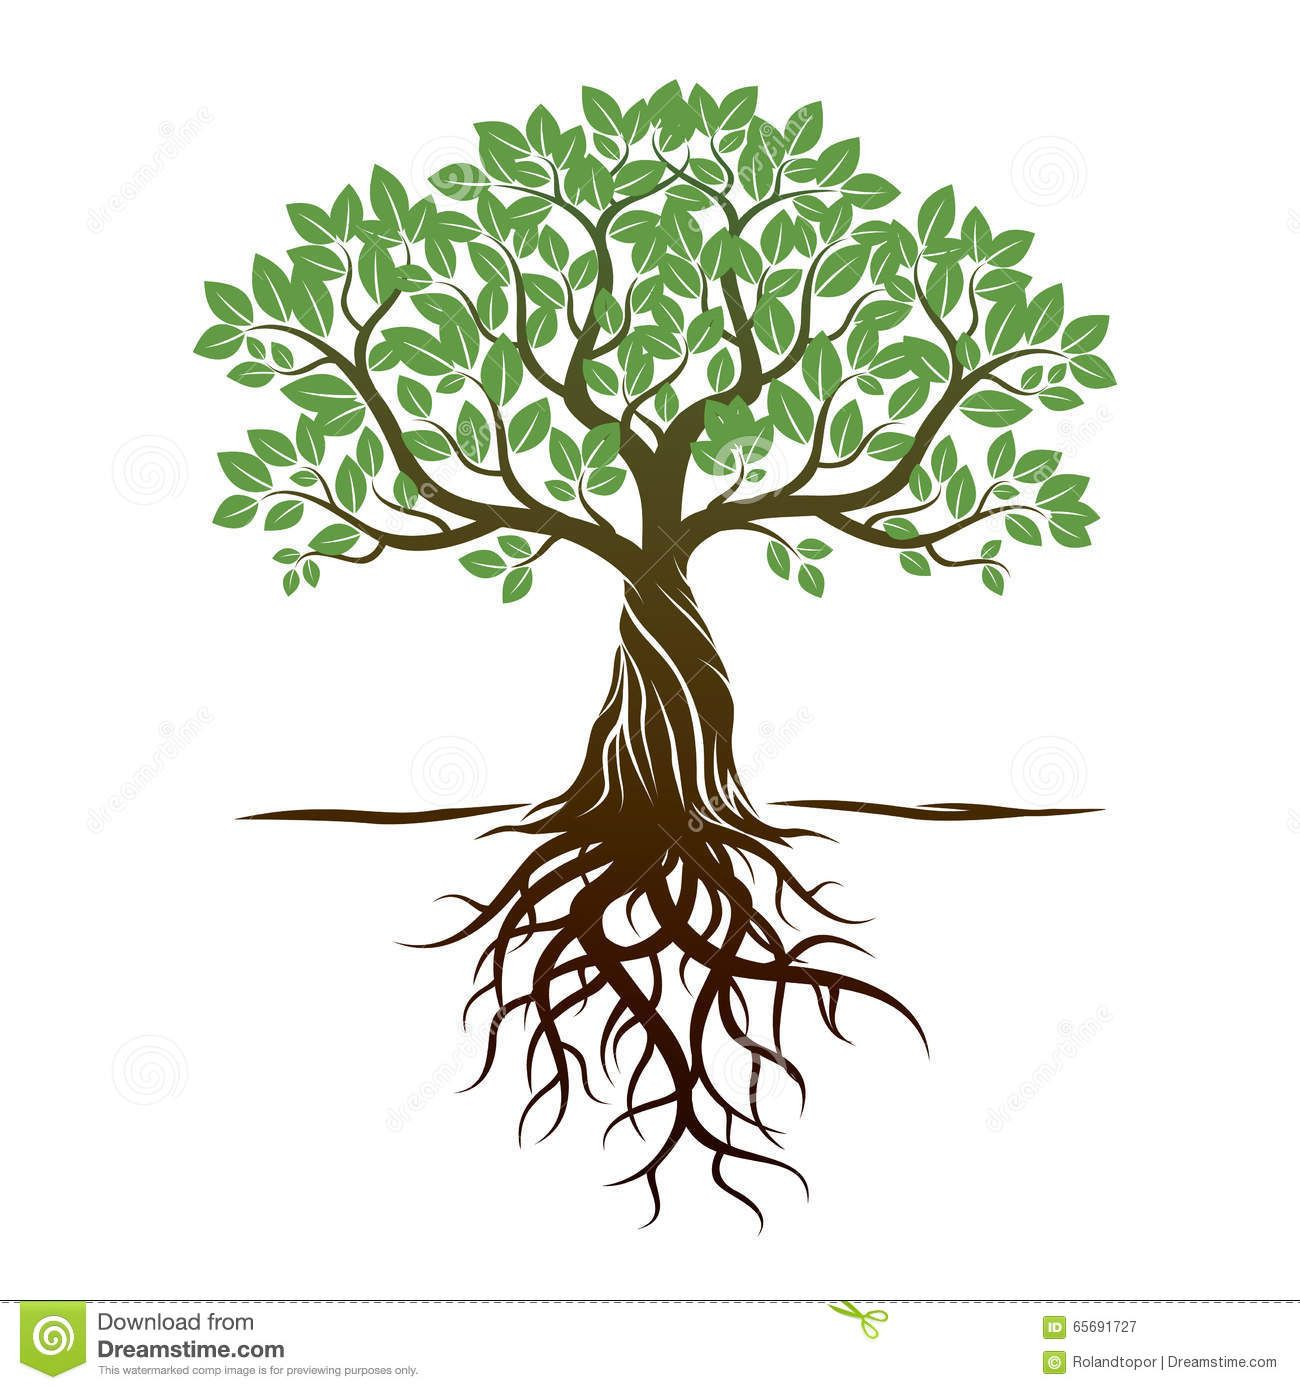 Color tree roots vector illustration graphic element for Arboles de hoja perenne con pocas raices